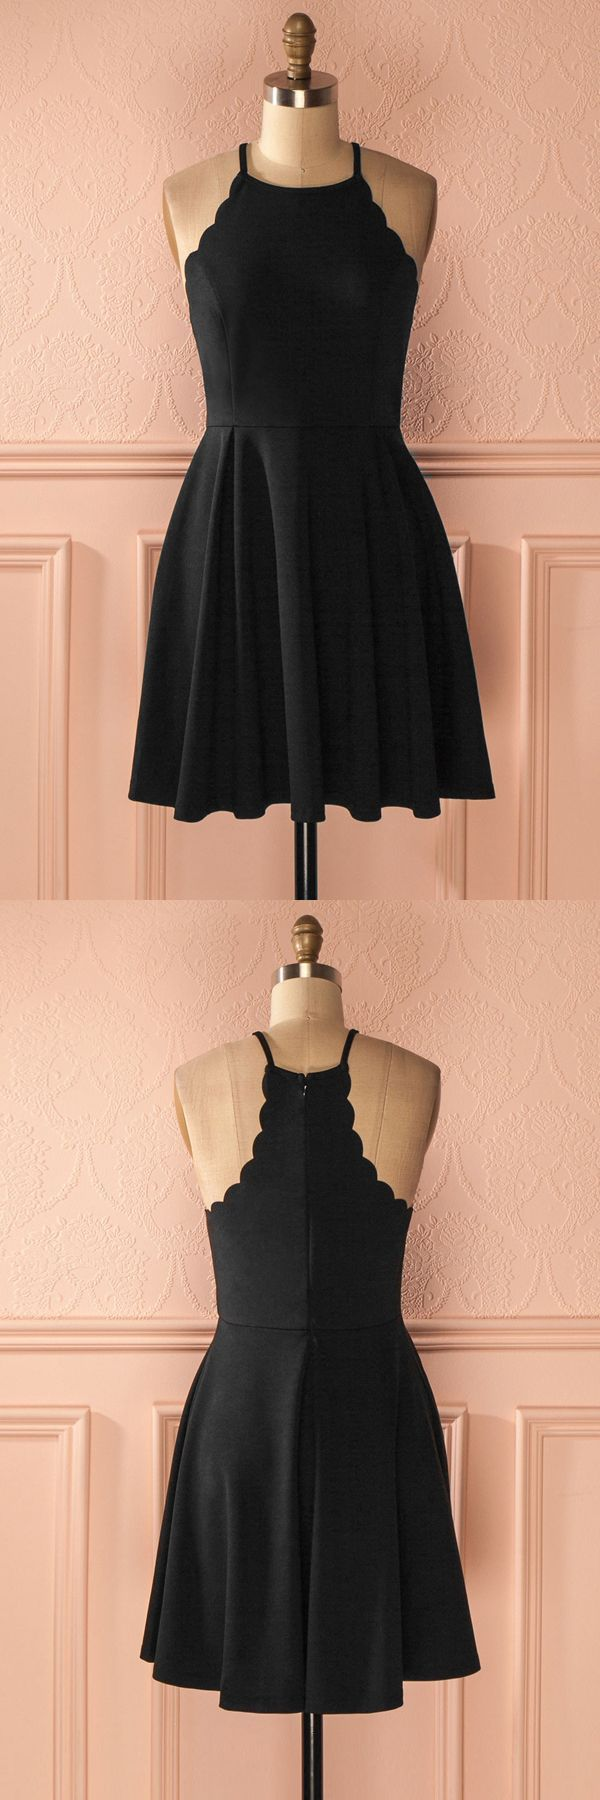 Black homecoming dresses short simple prom gowns chic vintage